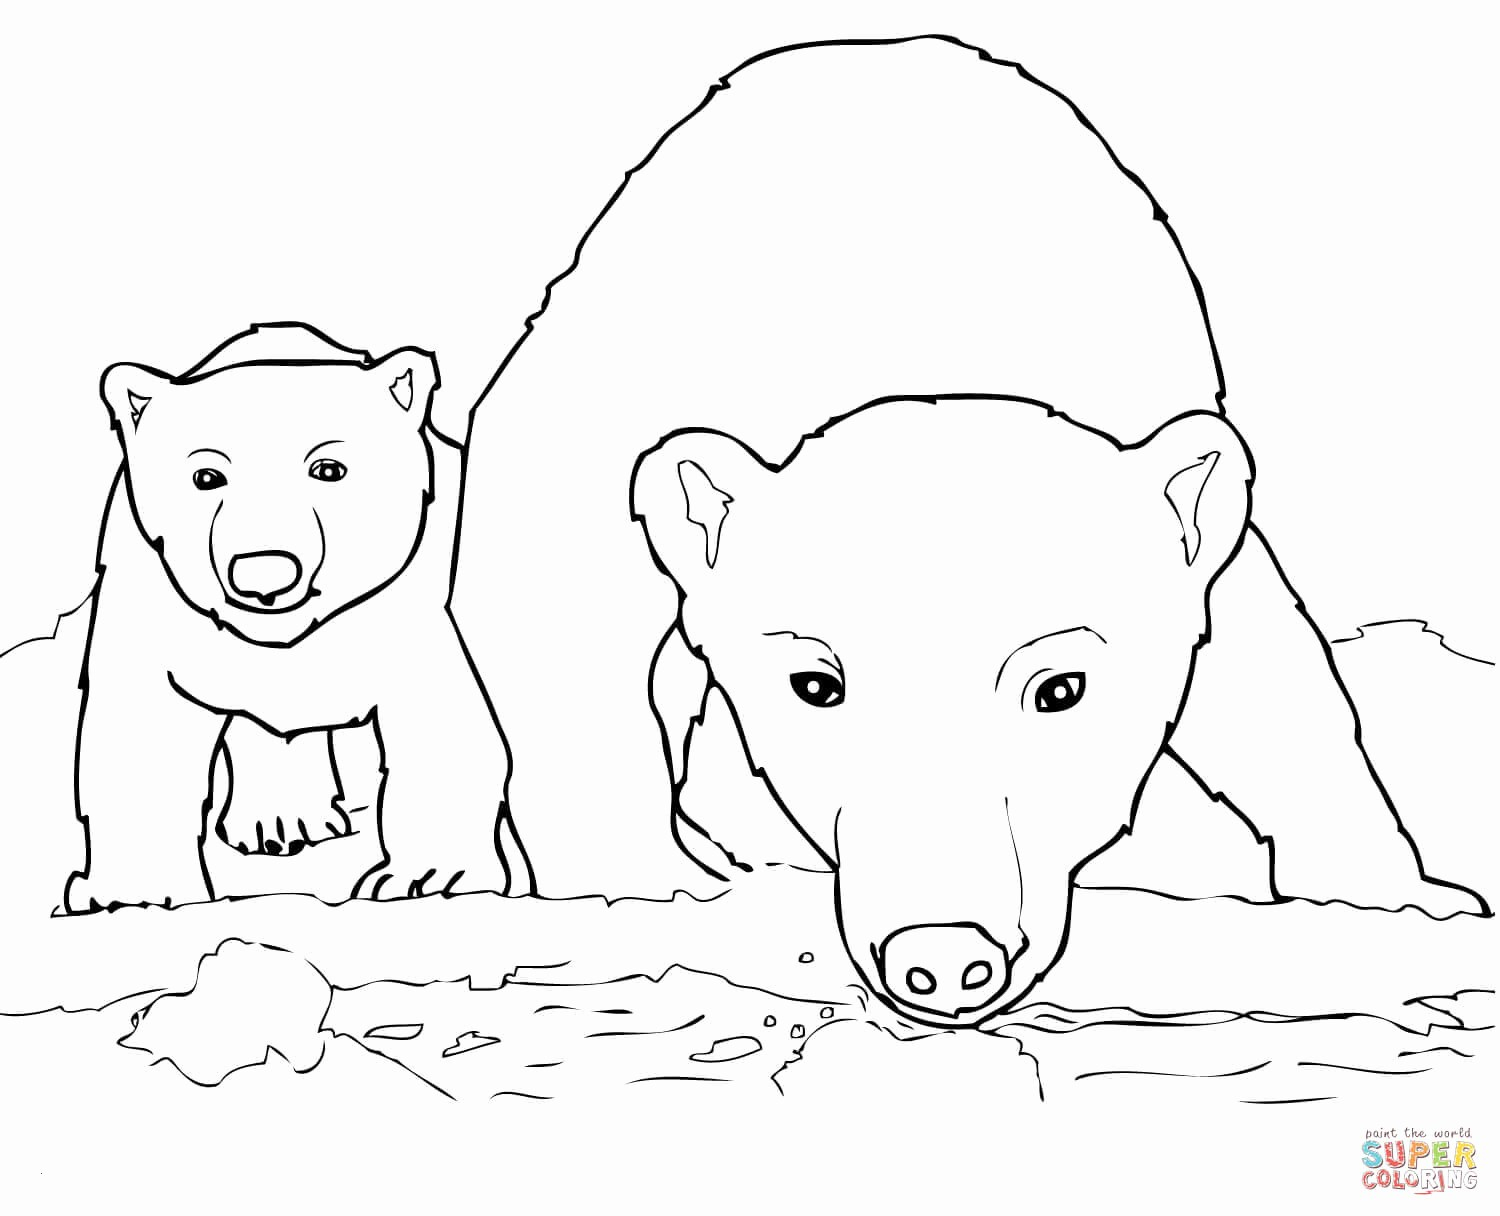 Polar Express Color Pages Polar Express Bell Coloring Pages Lovely Teddy Bear Color Pages